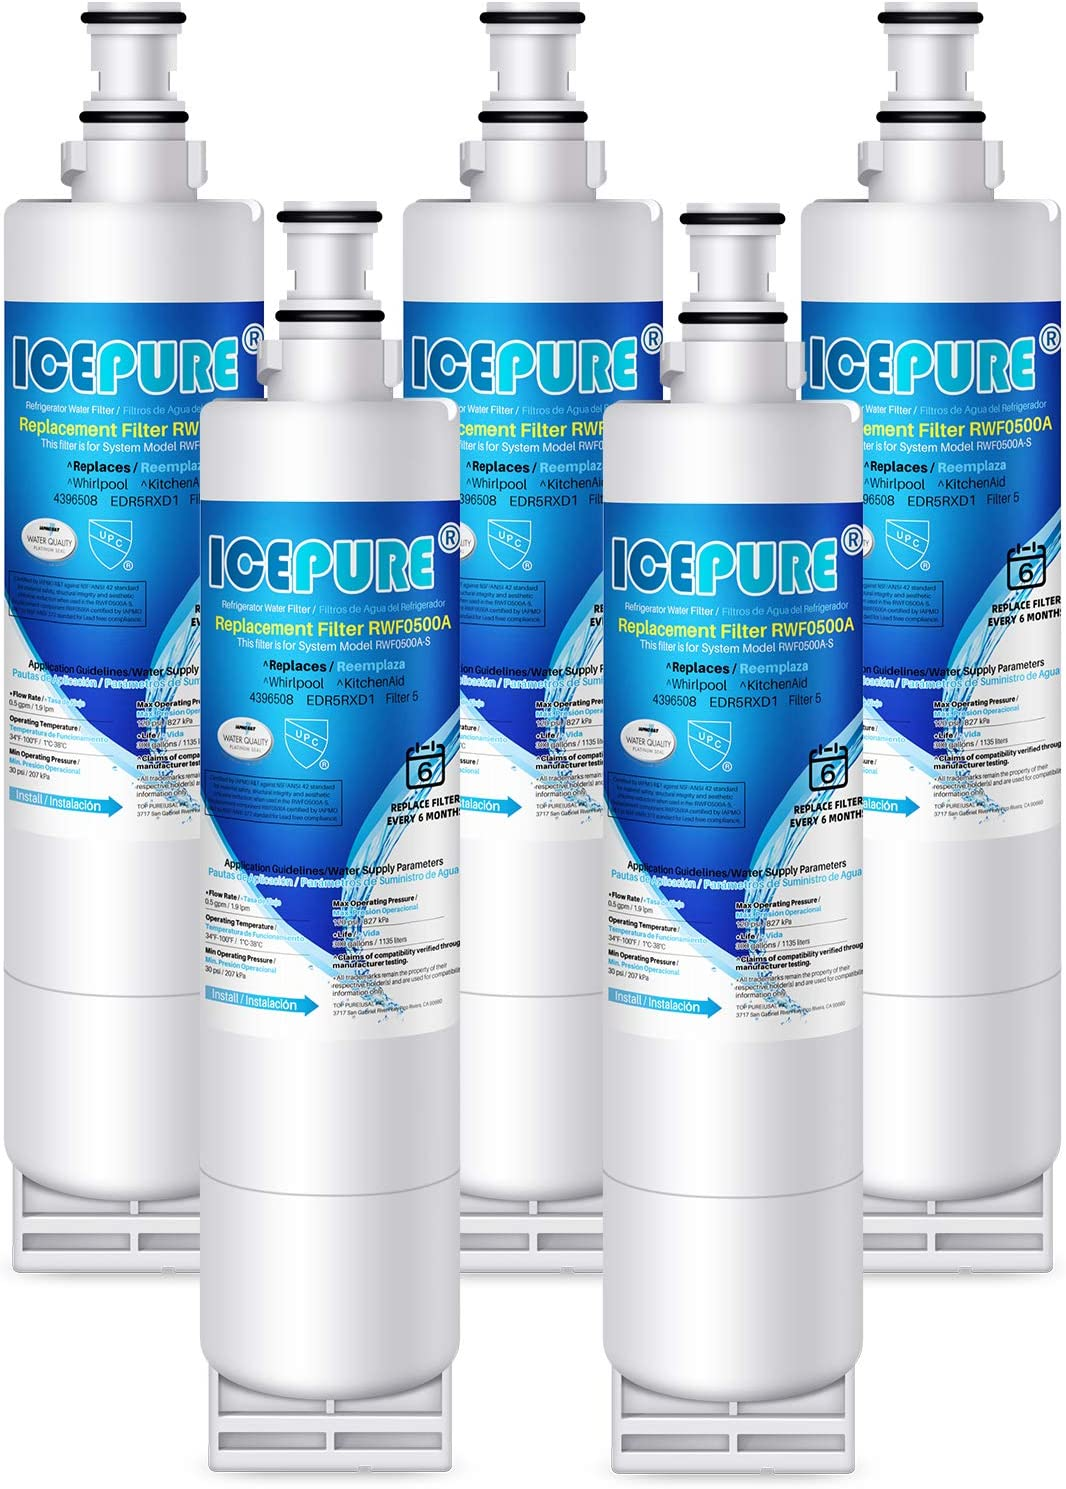 ICEPURE 4396508 Refrigerator Water Filter Replacement for Whirlpool EDR5RXD1, EveryDrop Filter 5, PUR W10186668, NLC240V, 4396510, 4396508P, 4392857, RWF0500A 5PACK